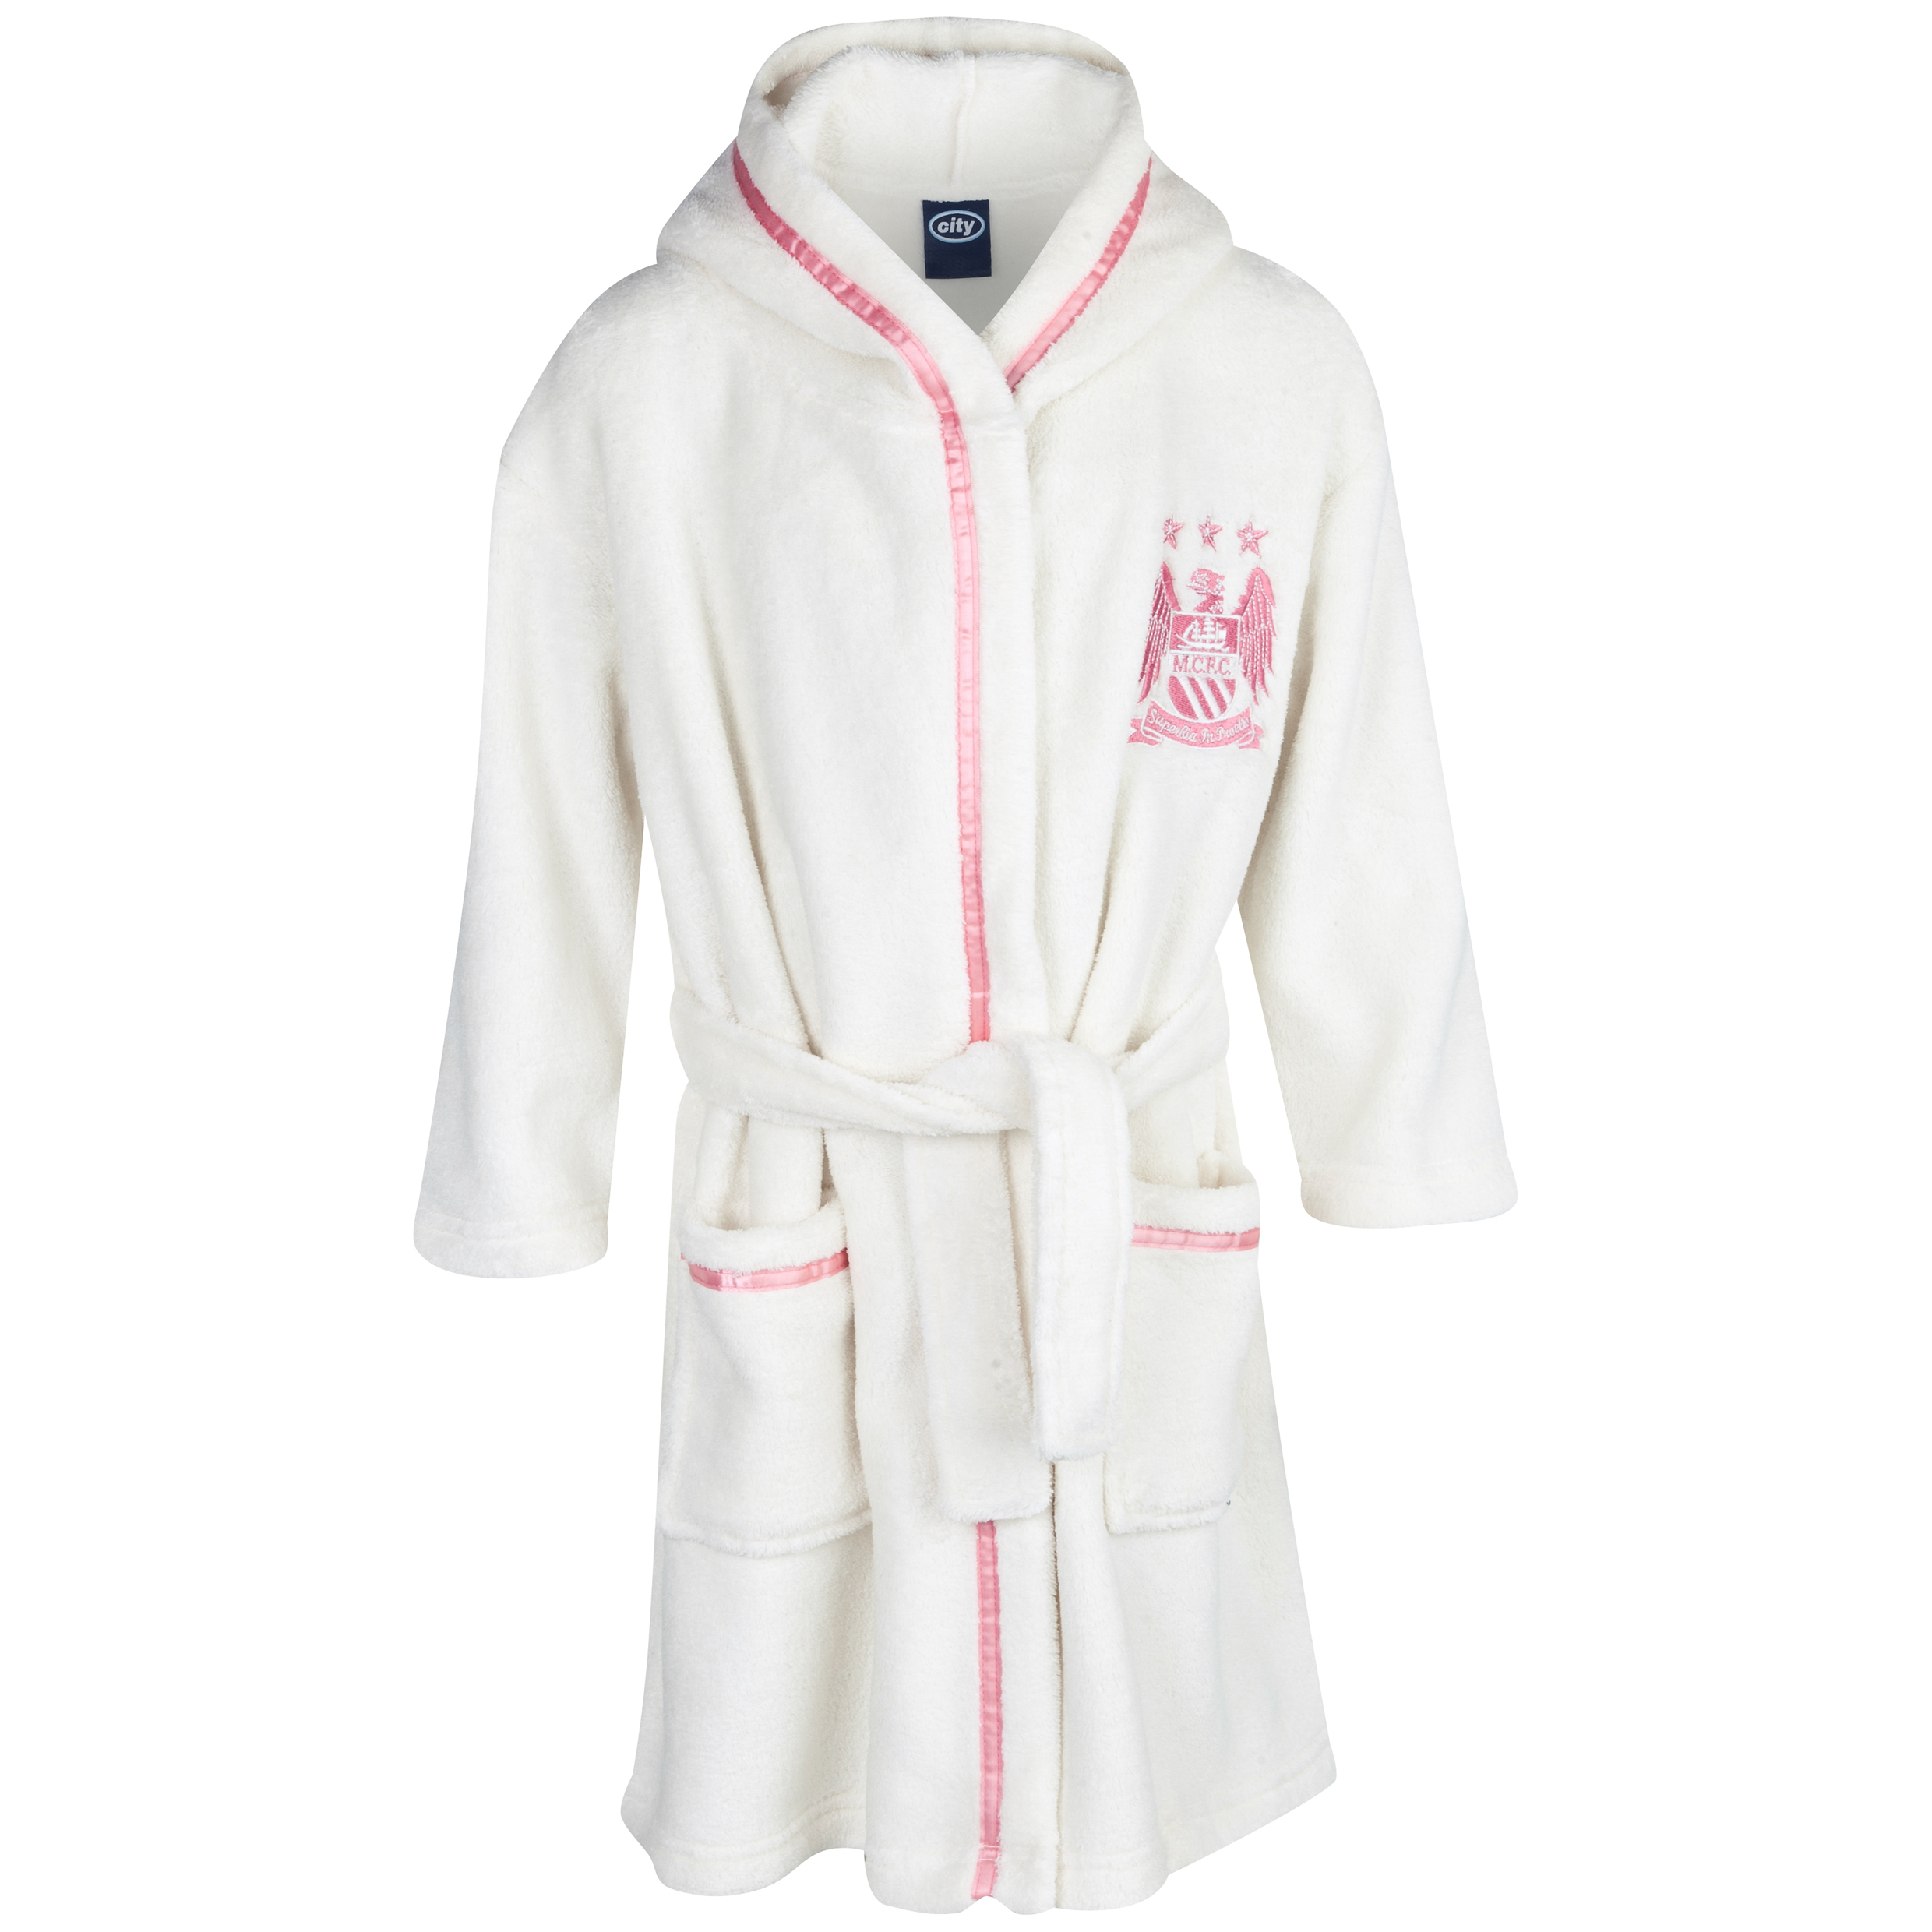 Manchester City Robe Girls Cream